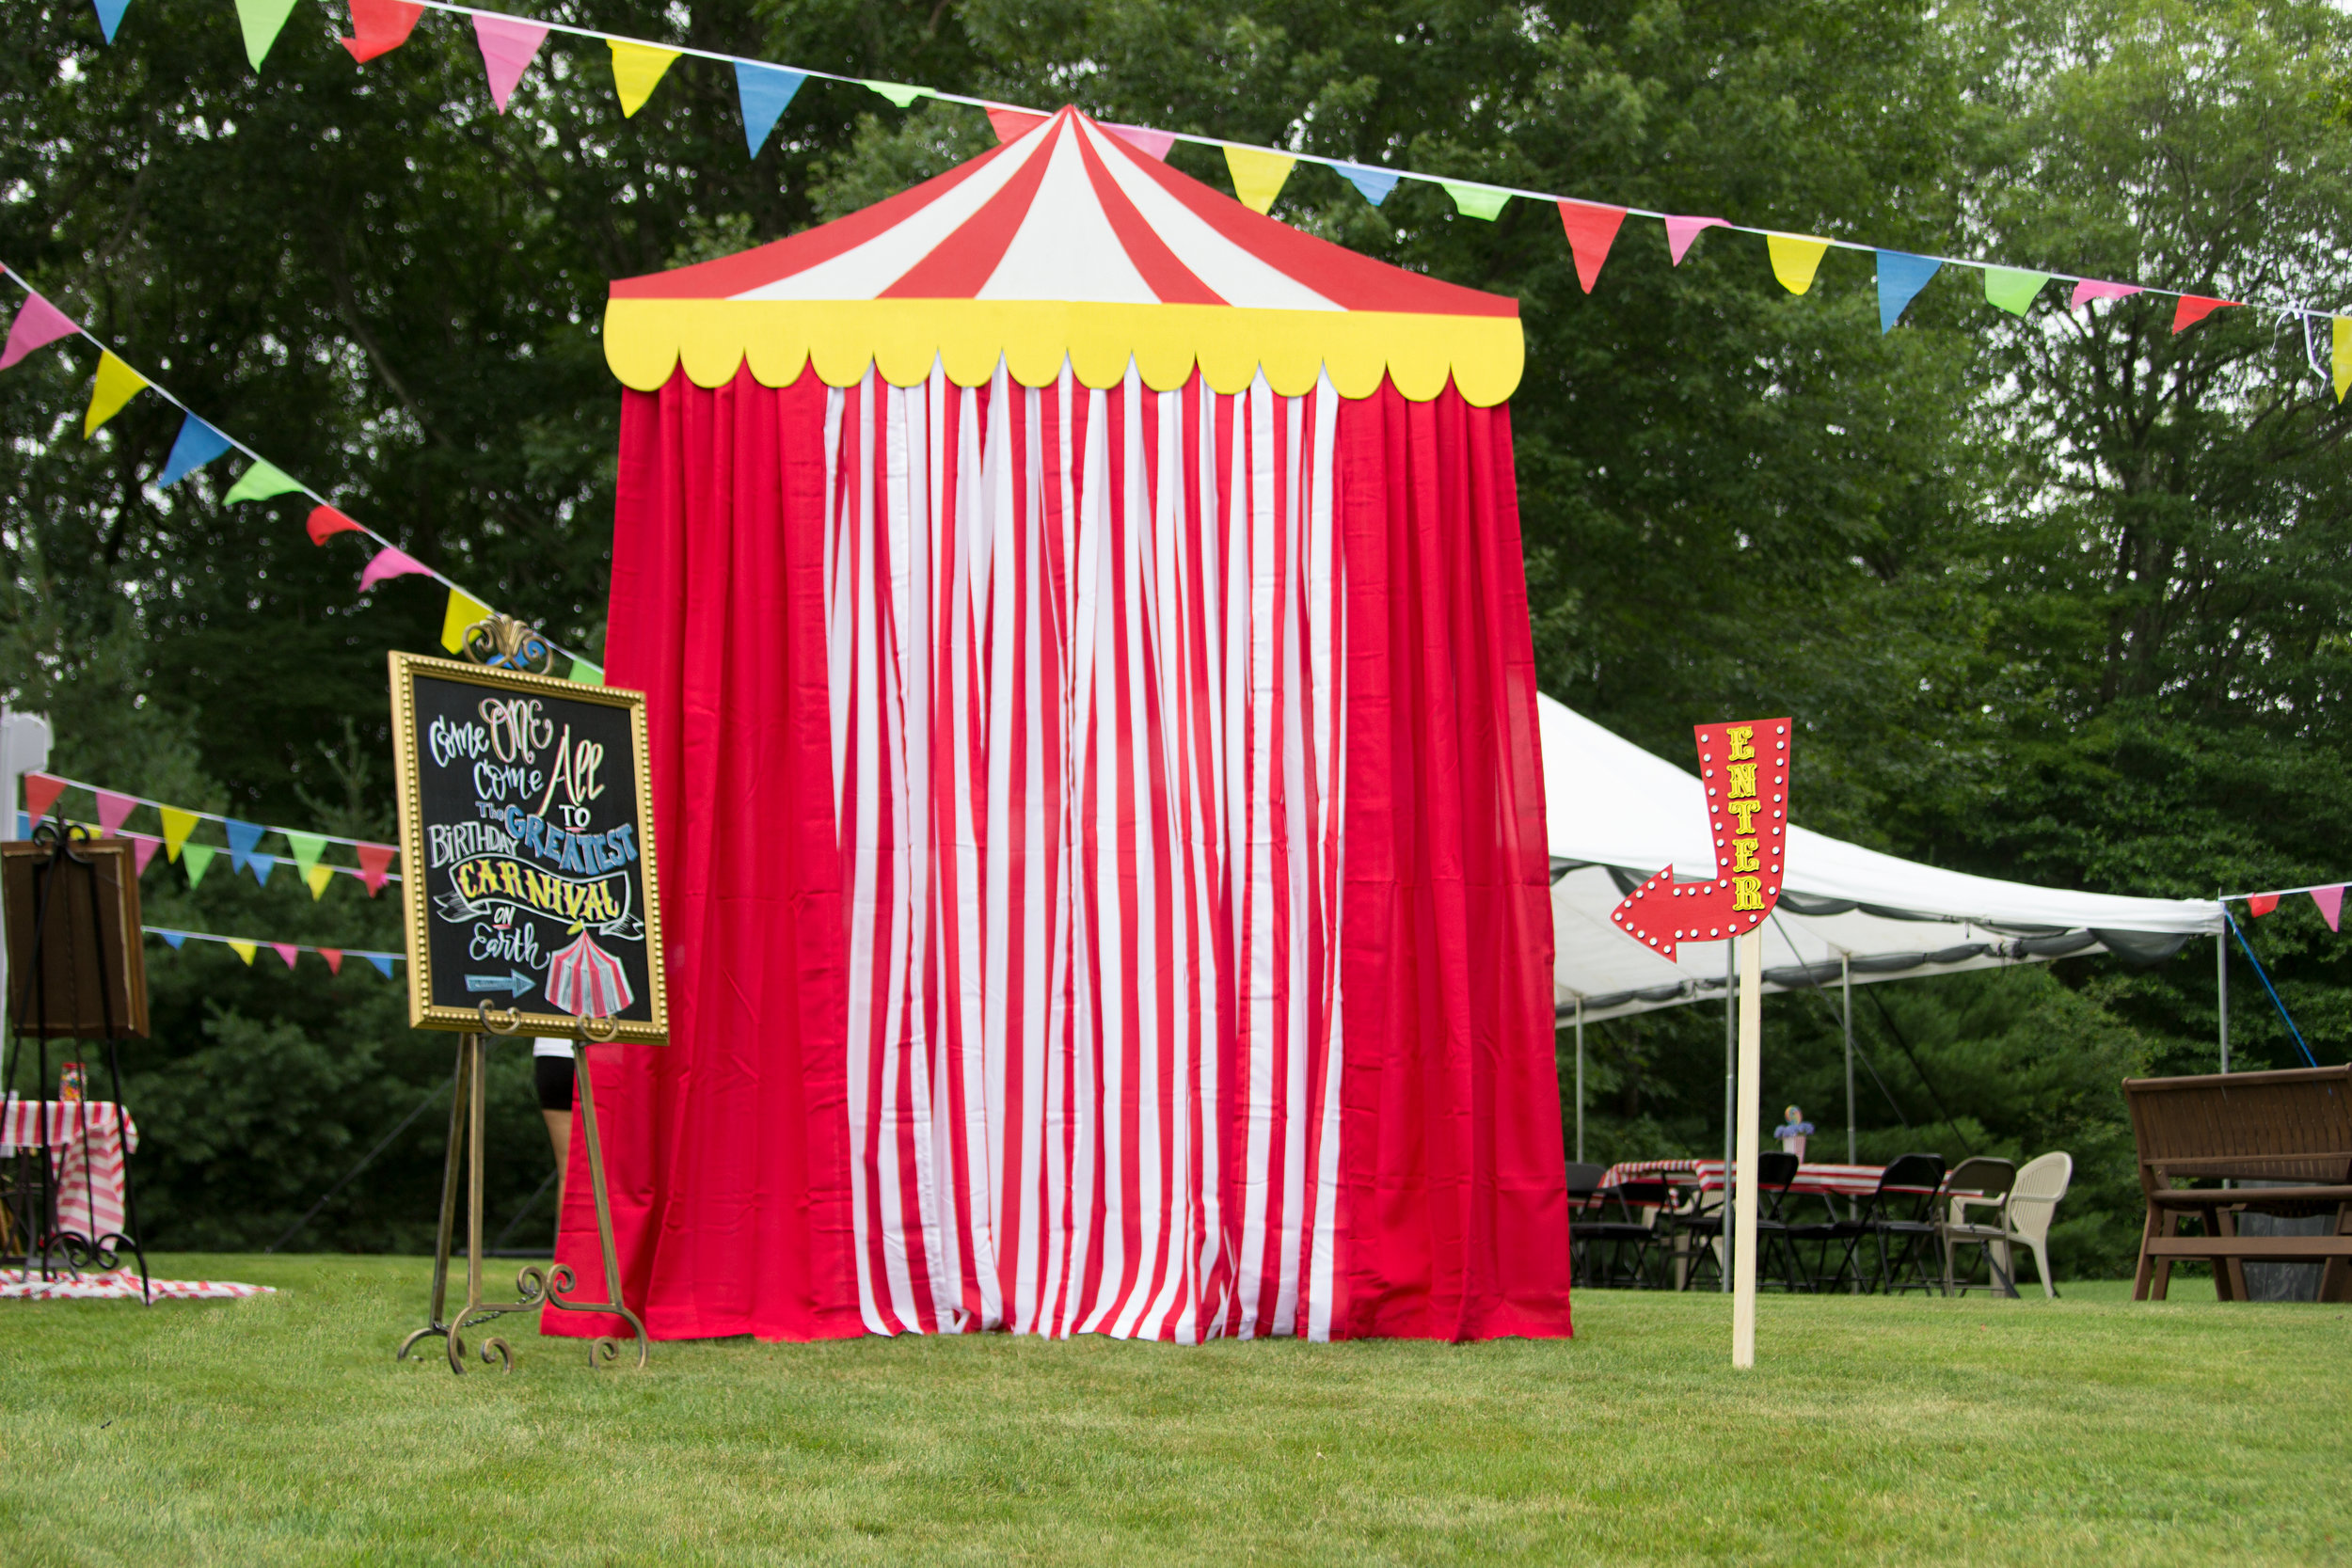 A birthday Carnival - Backdrop and signage